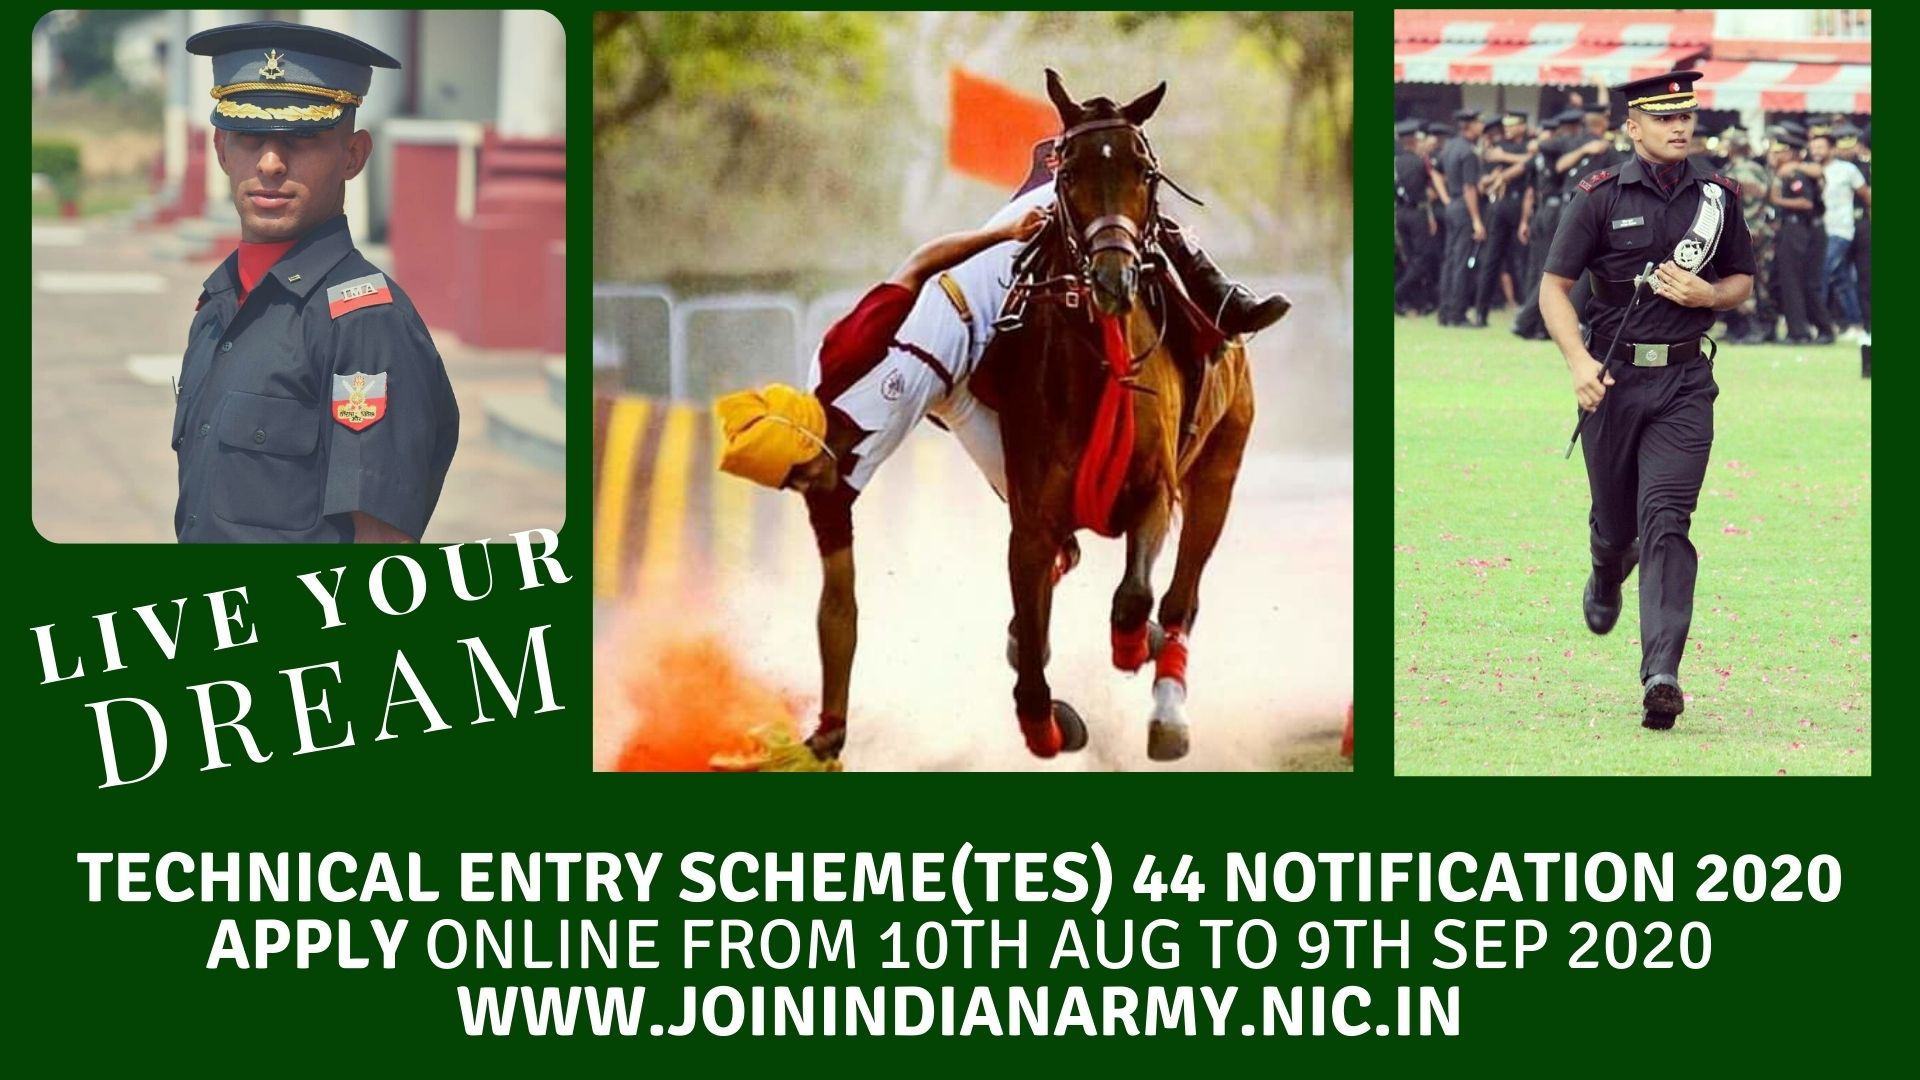 Technical Entry Scheme (TES) 44 Notification 2020